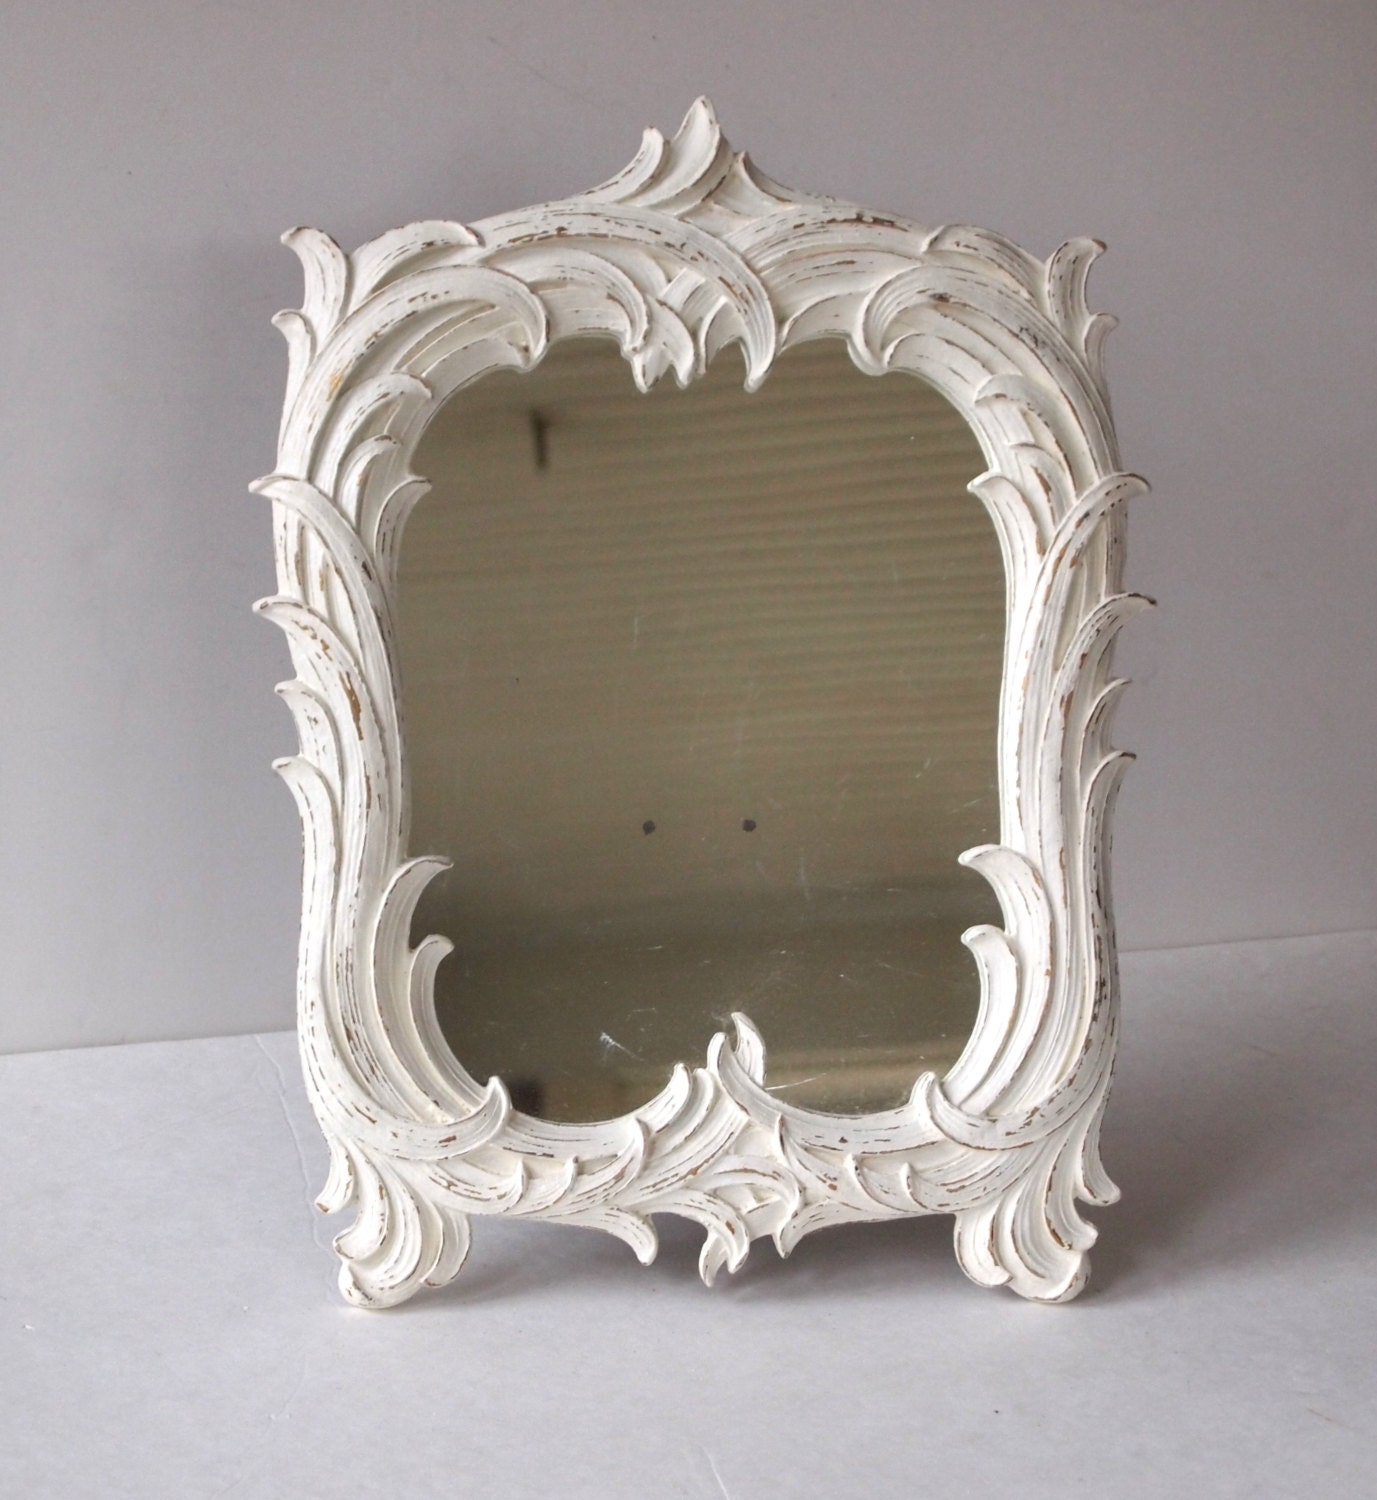 Mirror Vintage Home Decor Syroco Wood Hand by MollyMcShabby